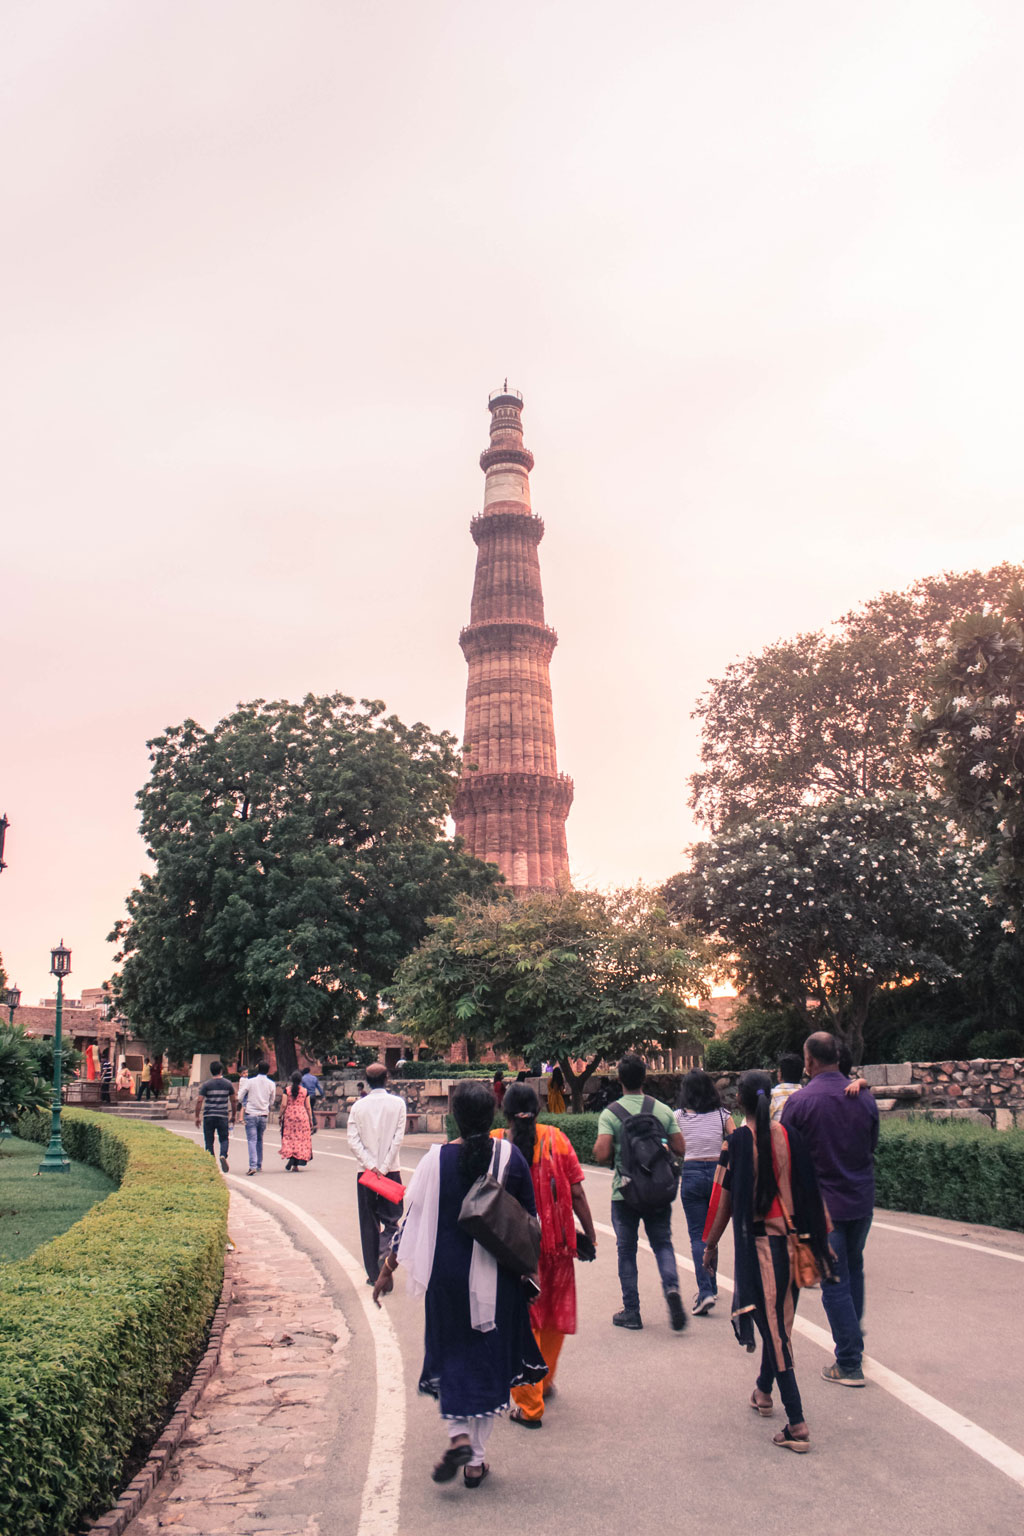 The Qutub Minar is the world's tallest minaret at 73 meters tall